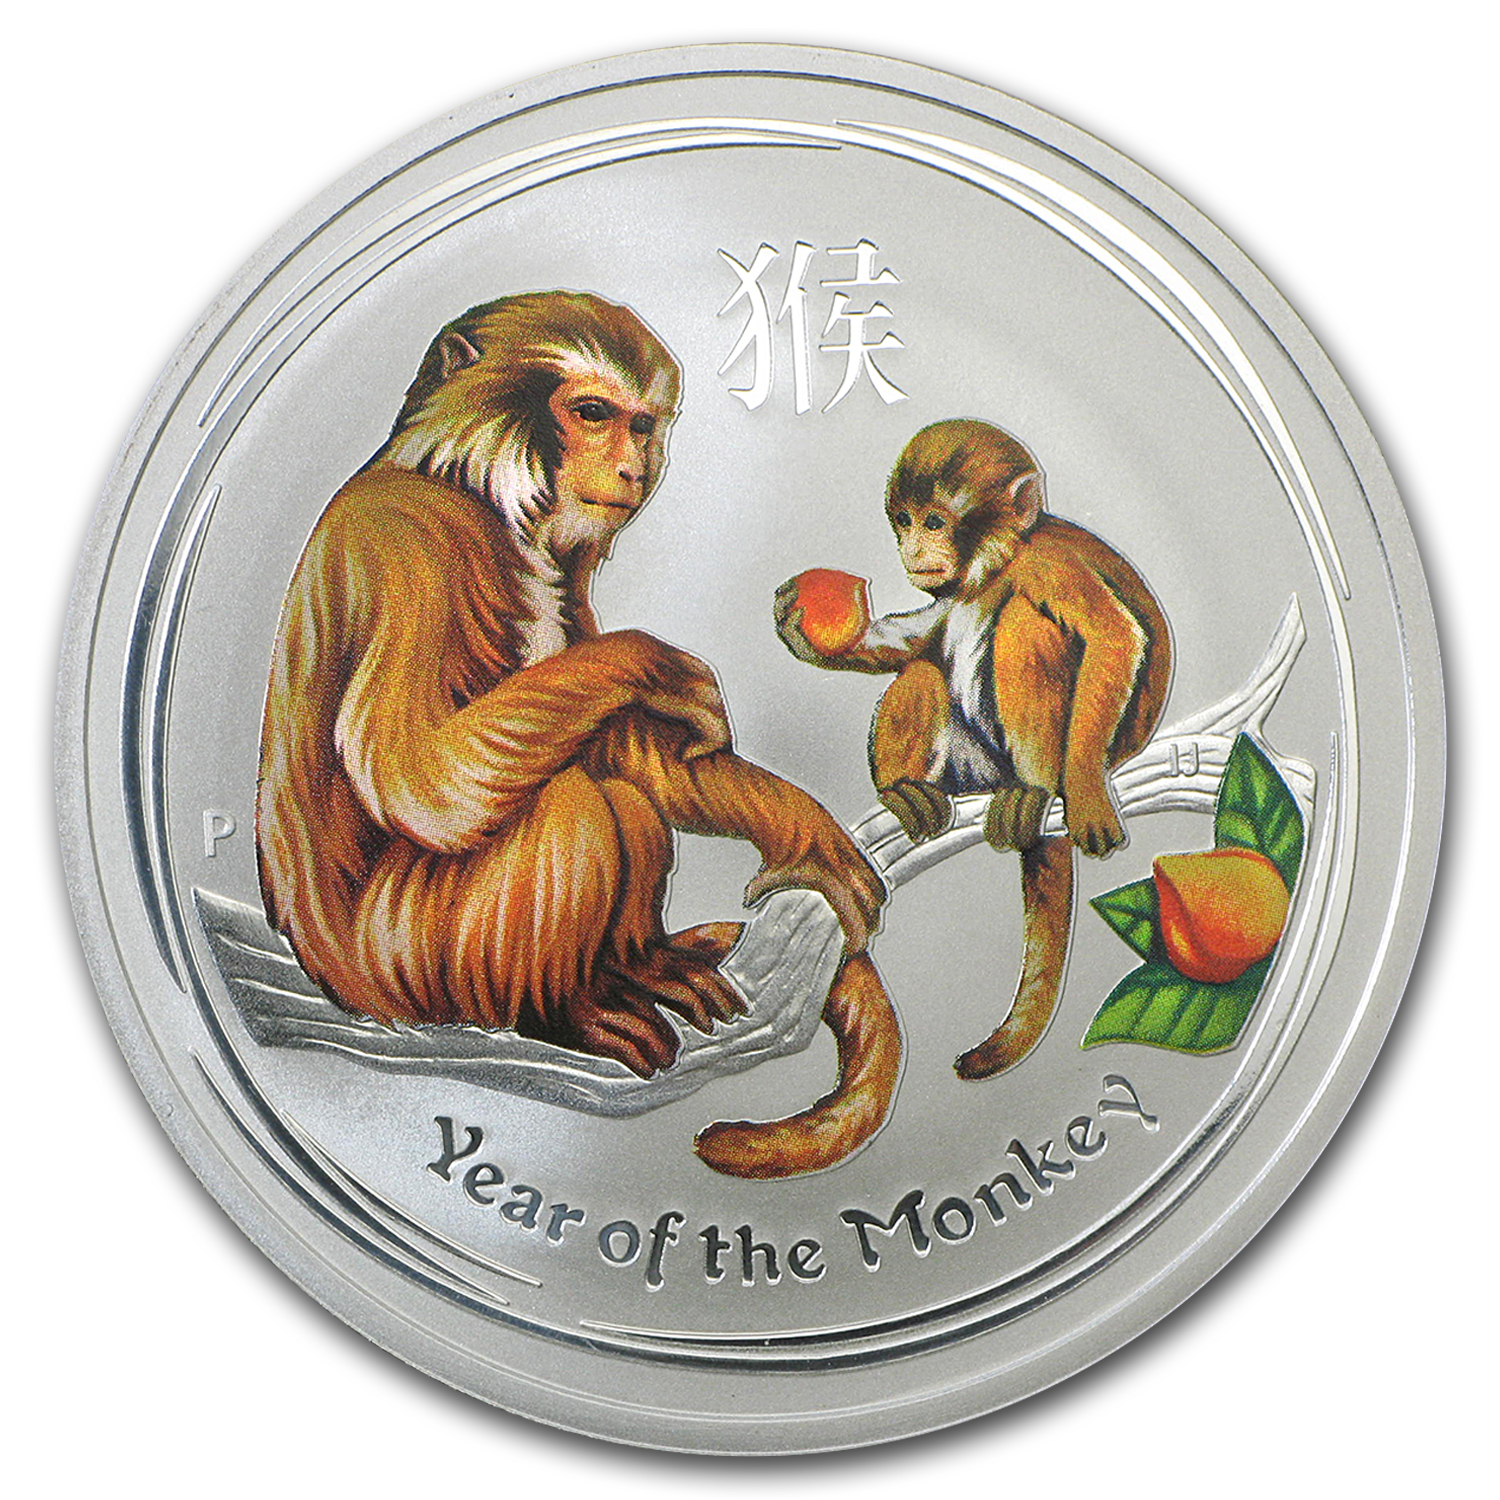 2016 Australia 1 oz Silver Lunar Monkey Colorized BU